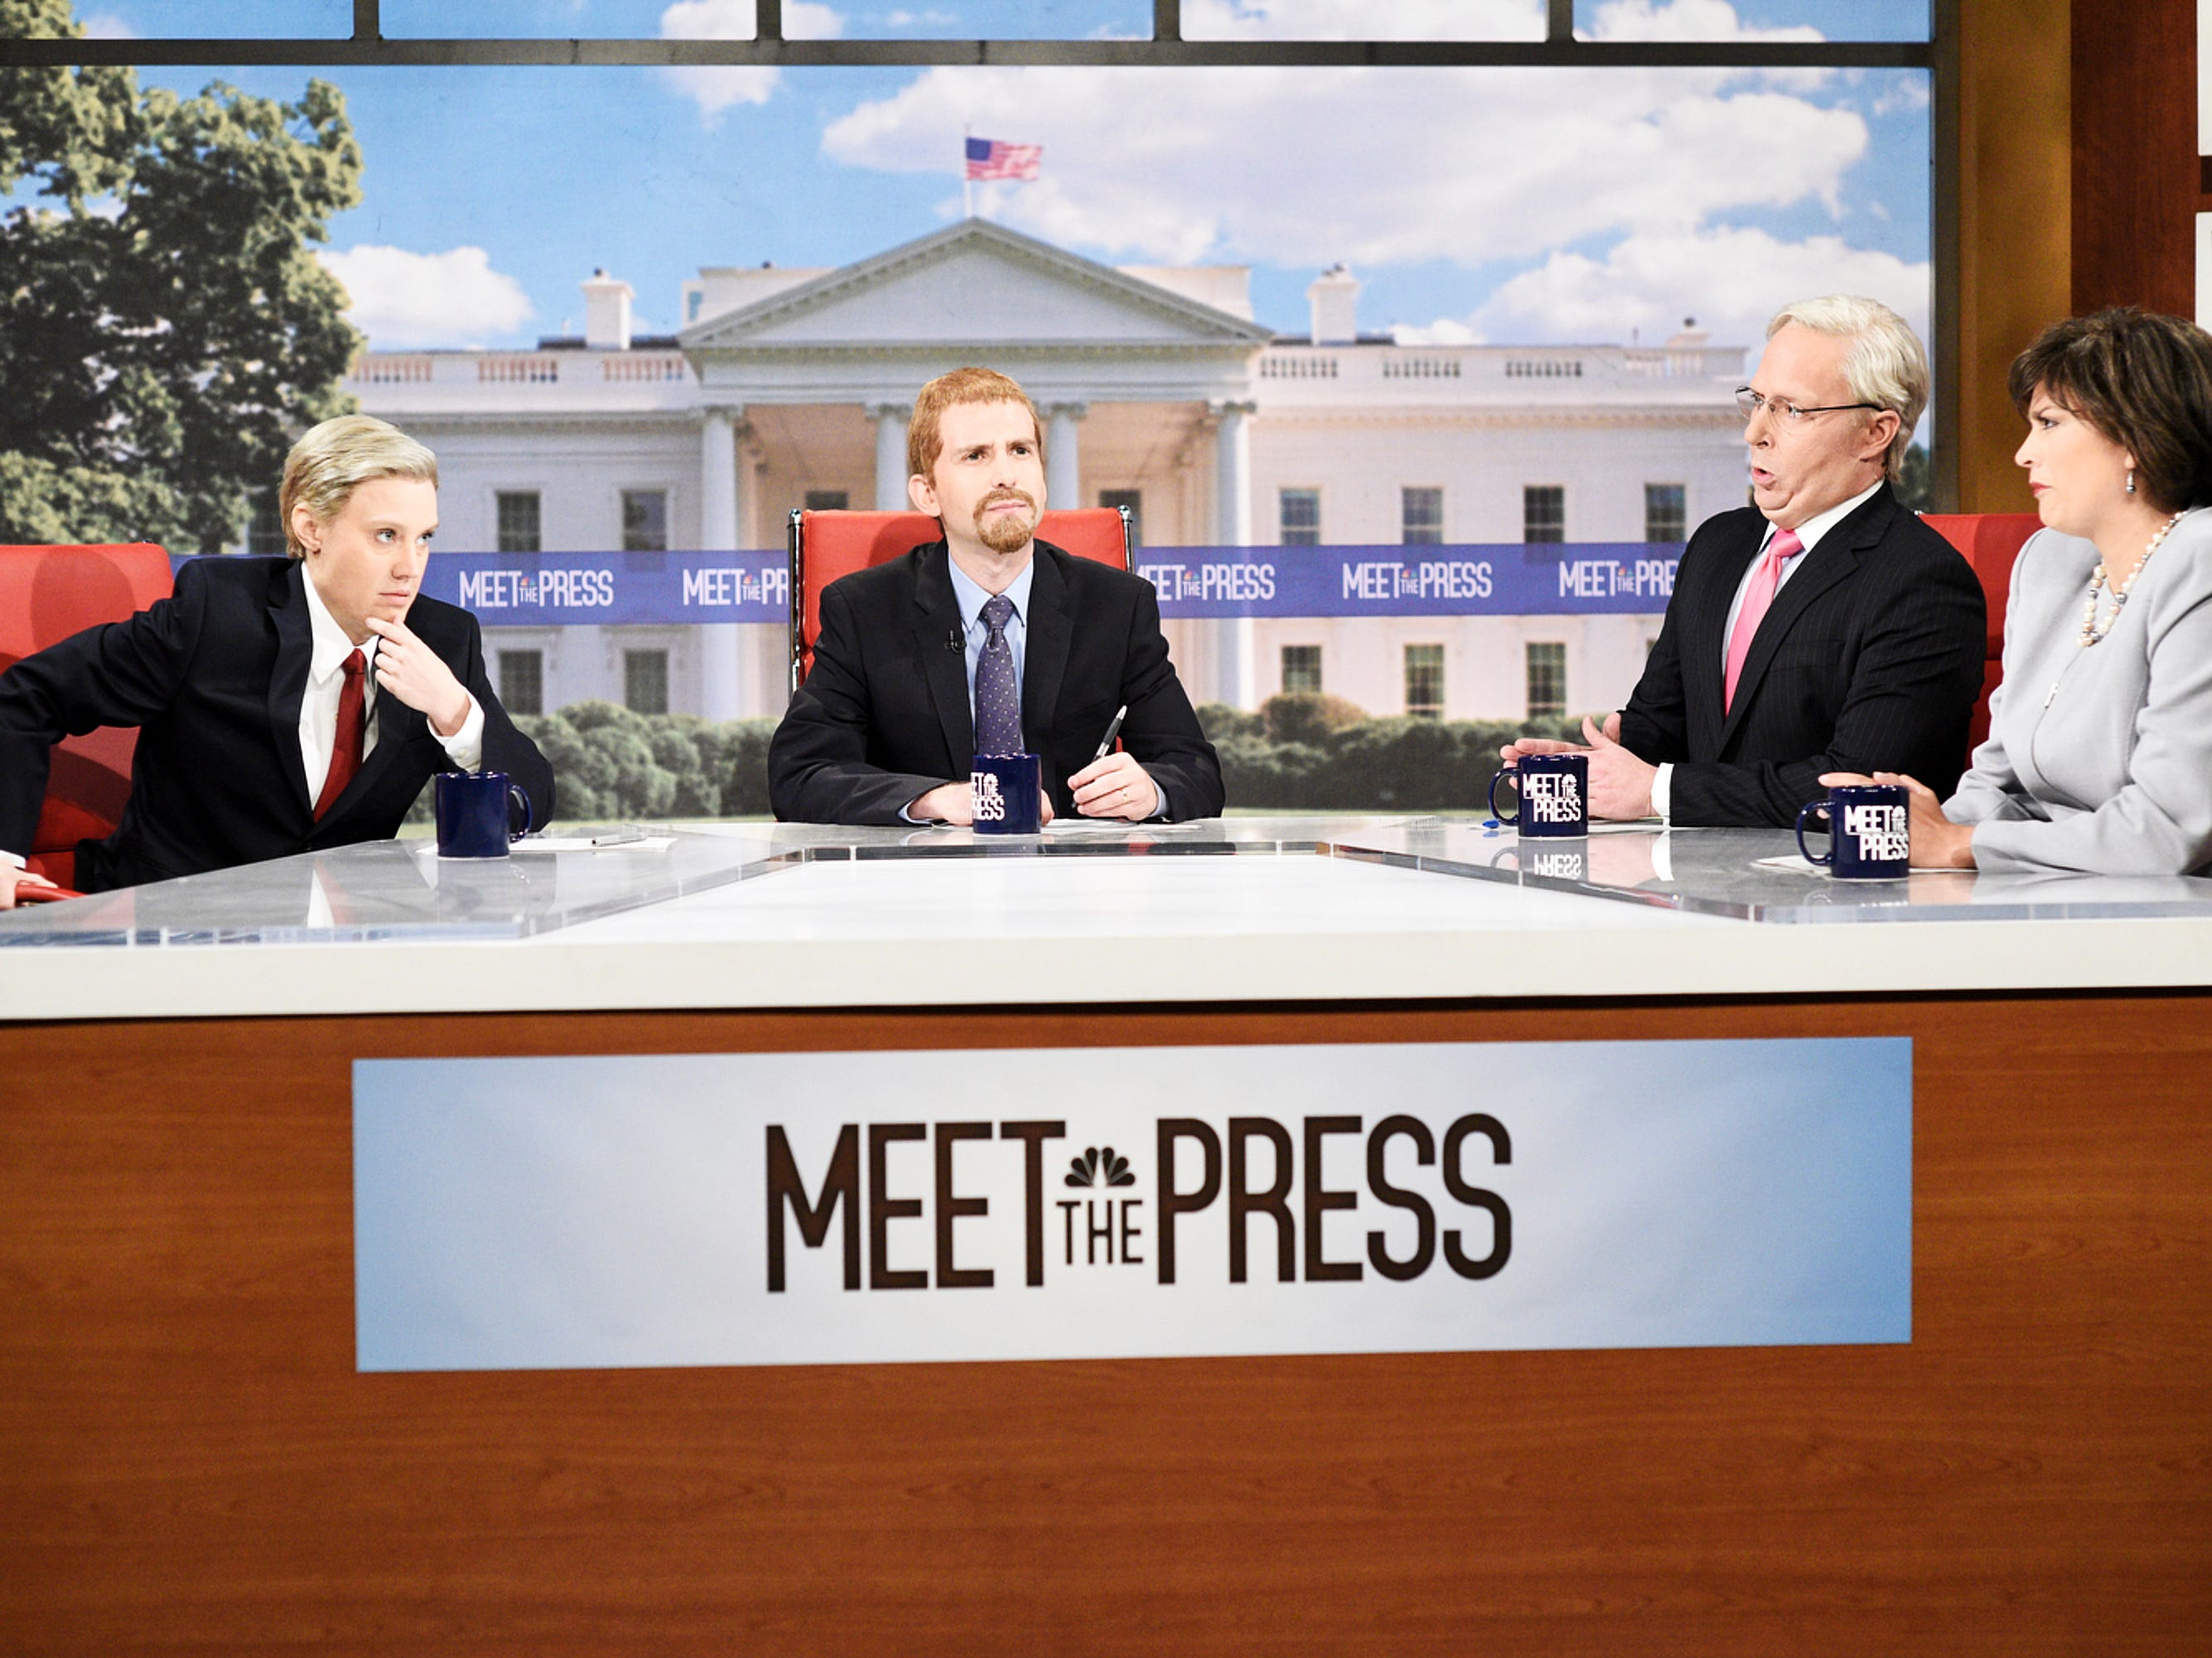 """The show's cold open, a parody of """"Meet the Press"""" with Kyle Mooney playing Chuck Todd, featured senators too scared to stand up to the president, including Kate McKinnon as Lindsey Graham, Beck Bennett as Mitch McConnell and Cecily Strong as Susan Collins."""